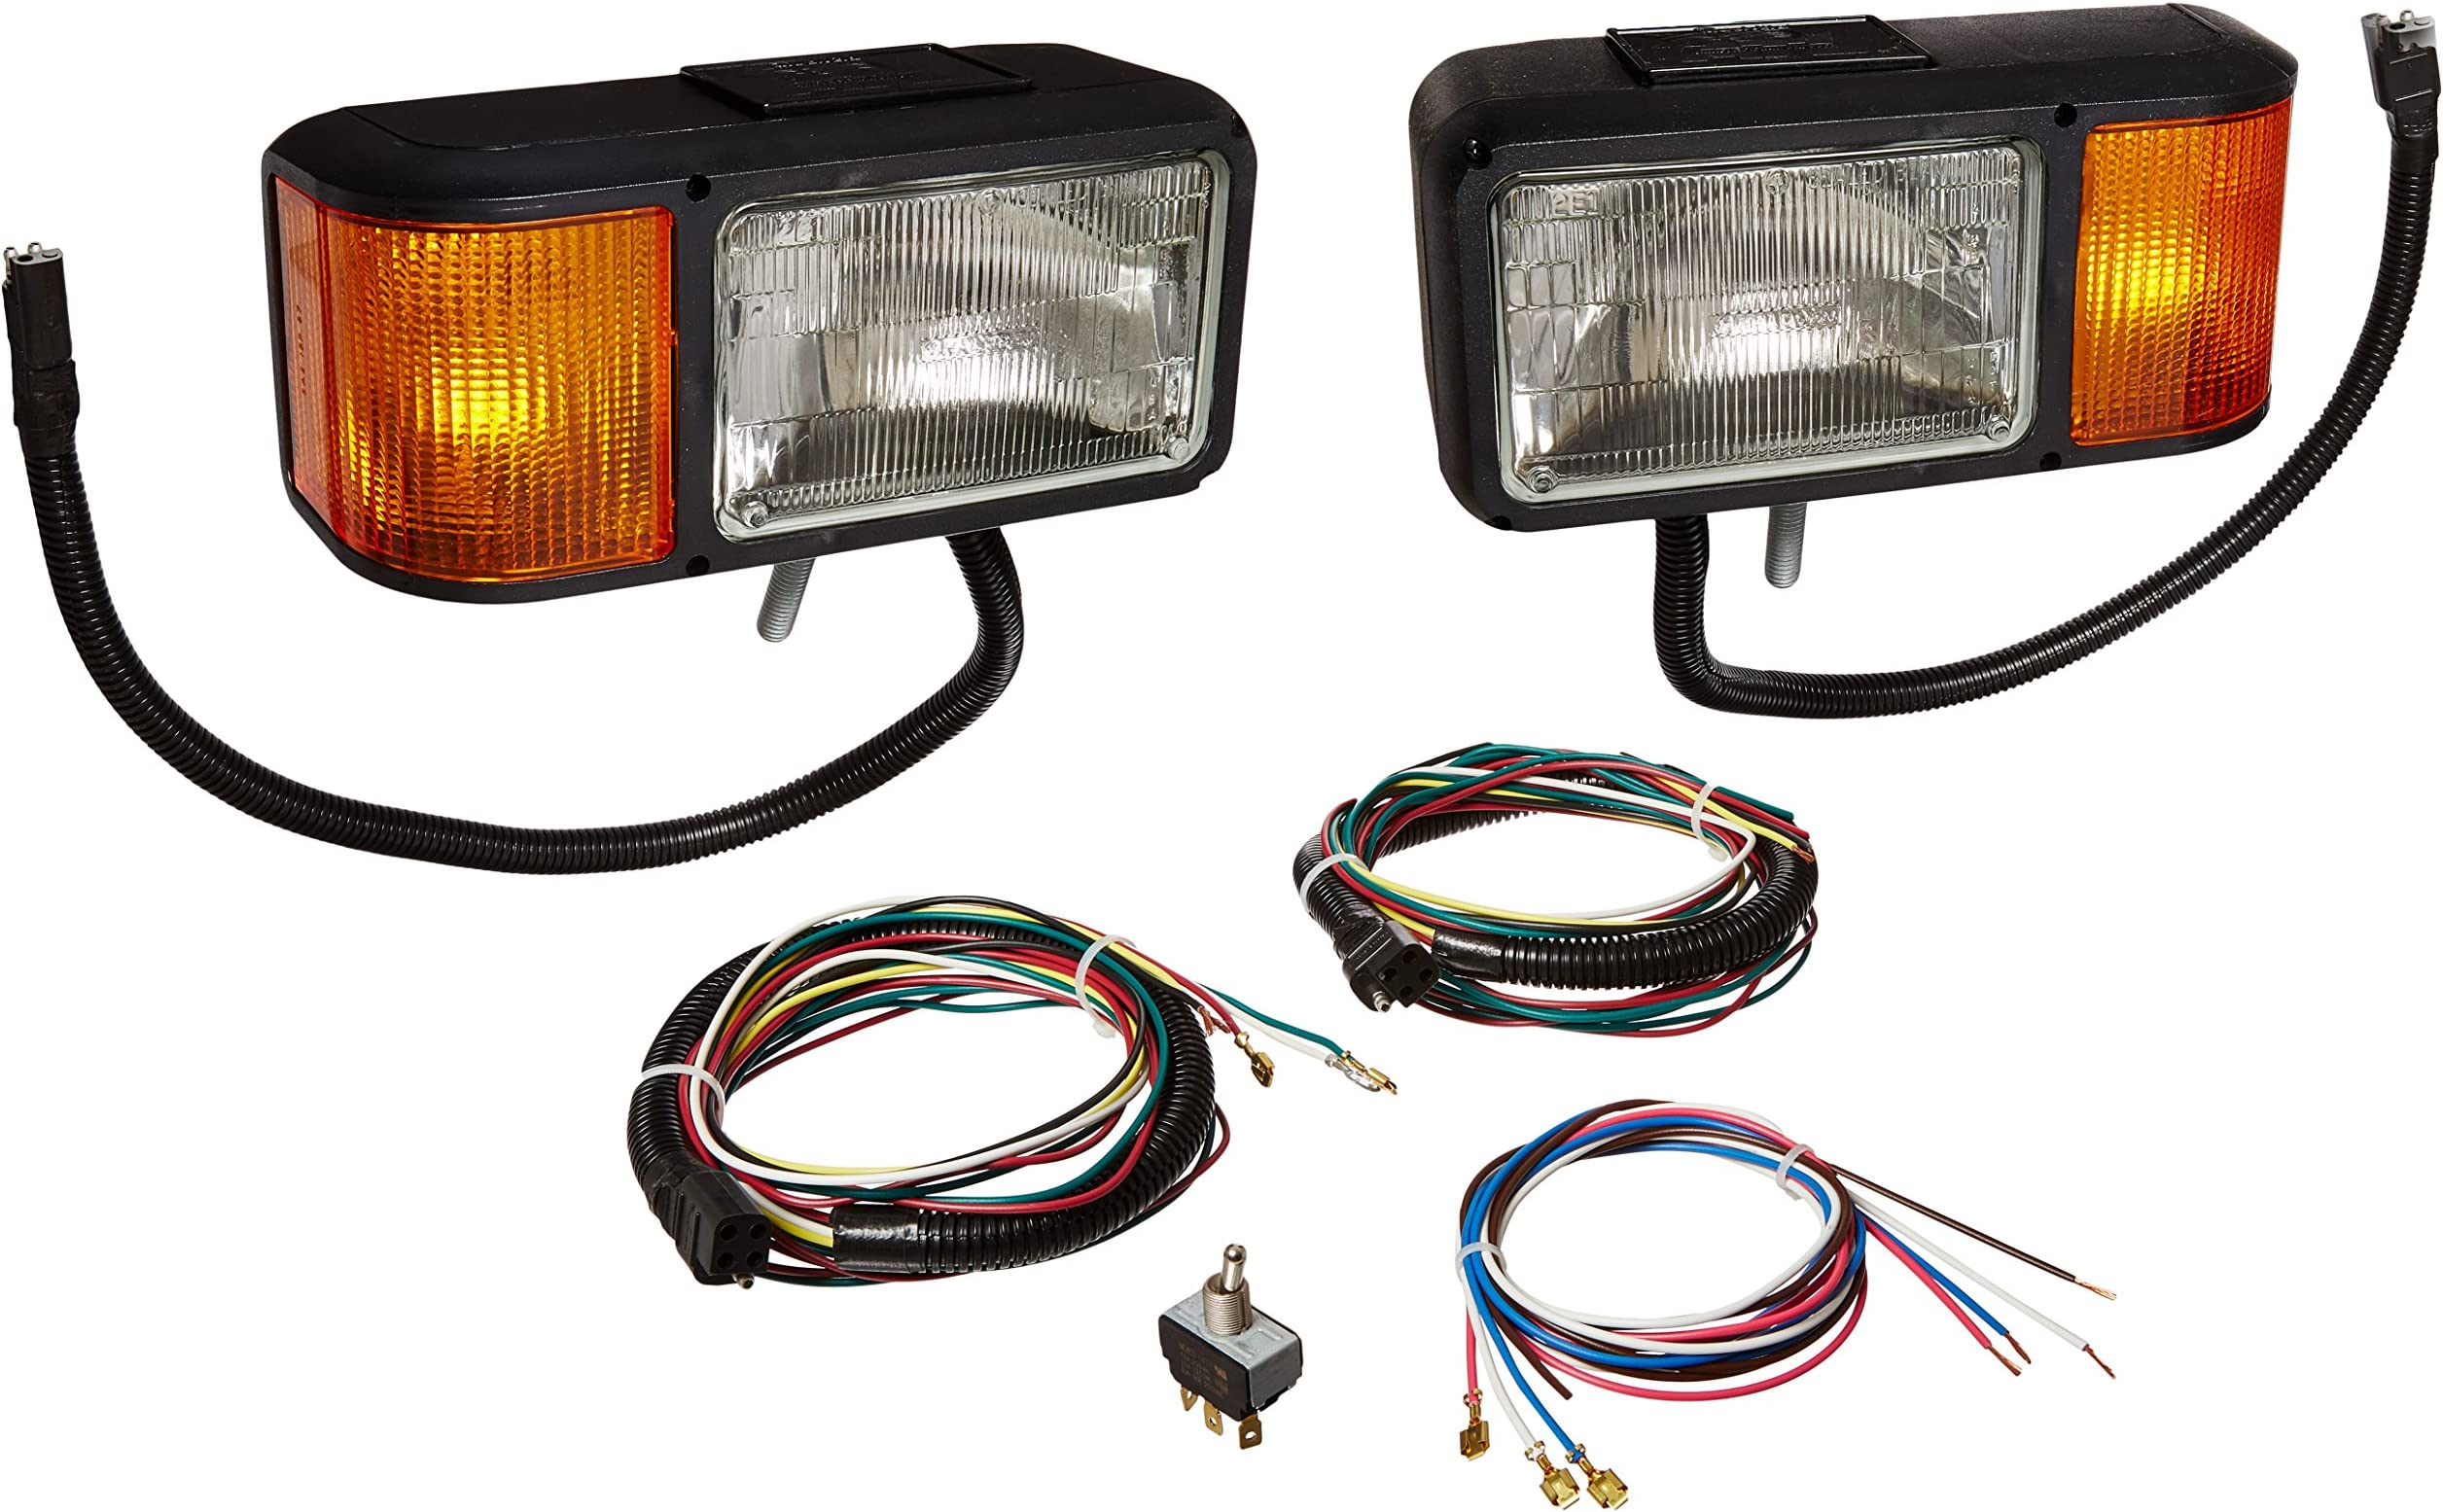 85 Gmc Plow Light Wiring Harness Just Another Diagram Blog Basic Amazon Com Snow Attachments Accessories Ice Automotive Rh